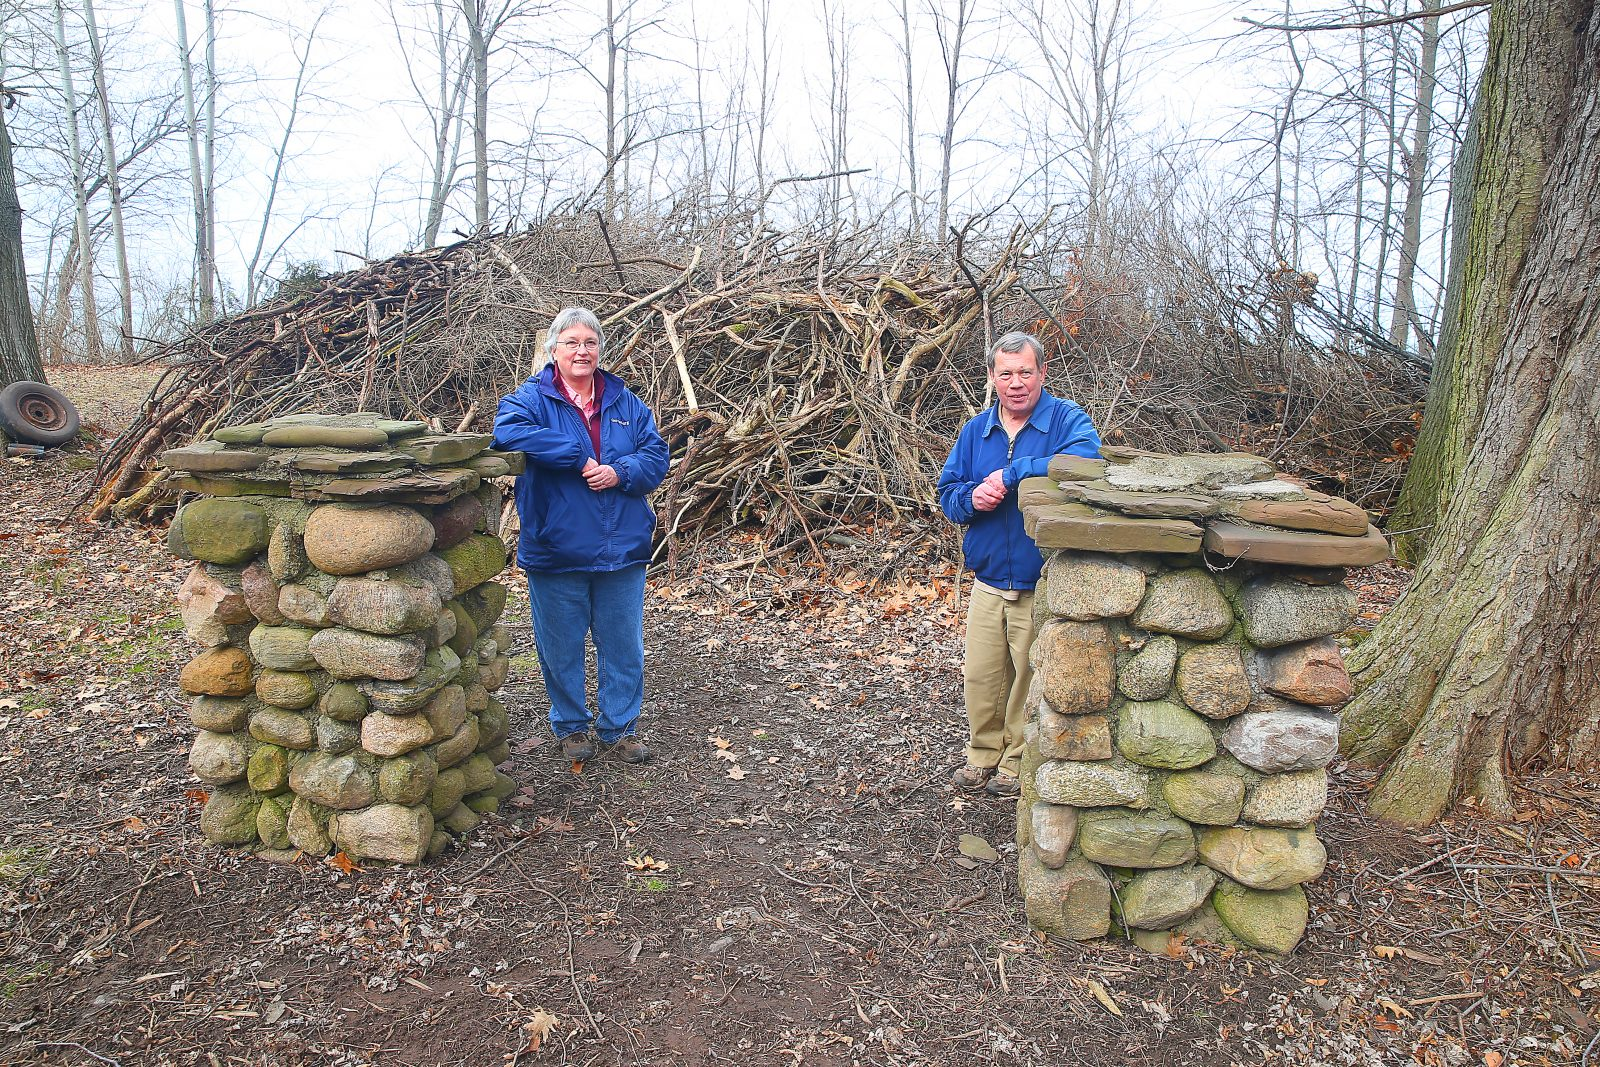 Cheryl and Mike Wertman stand by two stone pillars that were once part of the Drake Estate in Golden Hill State Park. Behind them is one of the many brush piles they have made in the months they have been working at the site, almost daily since last spring. (John Hickey/Buffalo News)